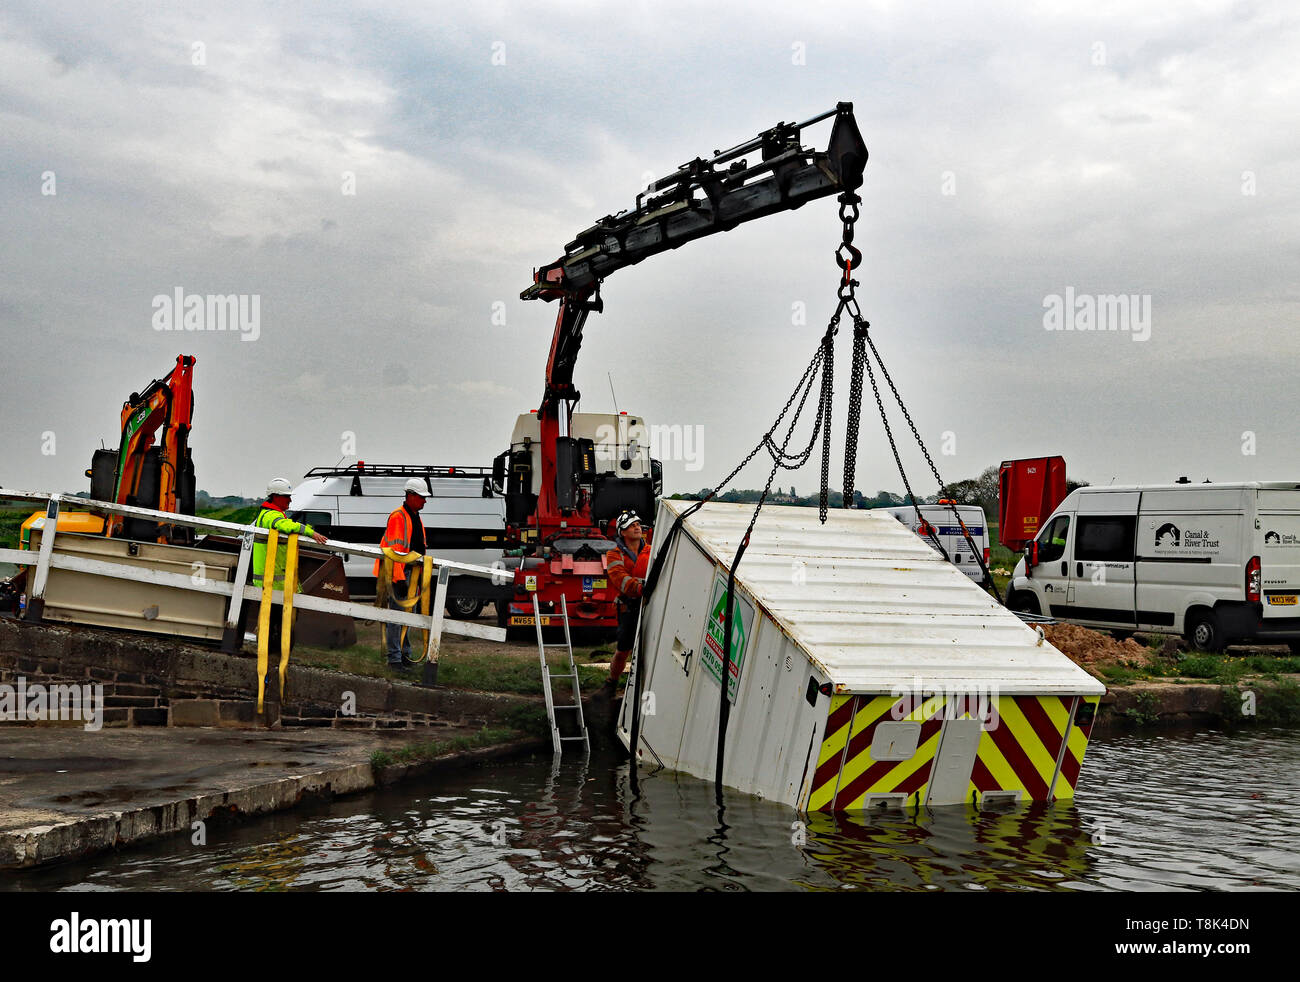 A container is lifted out of the Leeds and Liverpool canal near Haskayne following a act of vandalism with a JCB over night 23rd April 2019 Cw 6702 - Stock Image